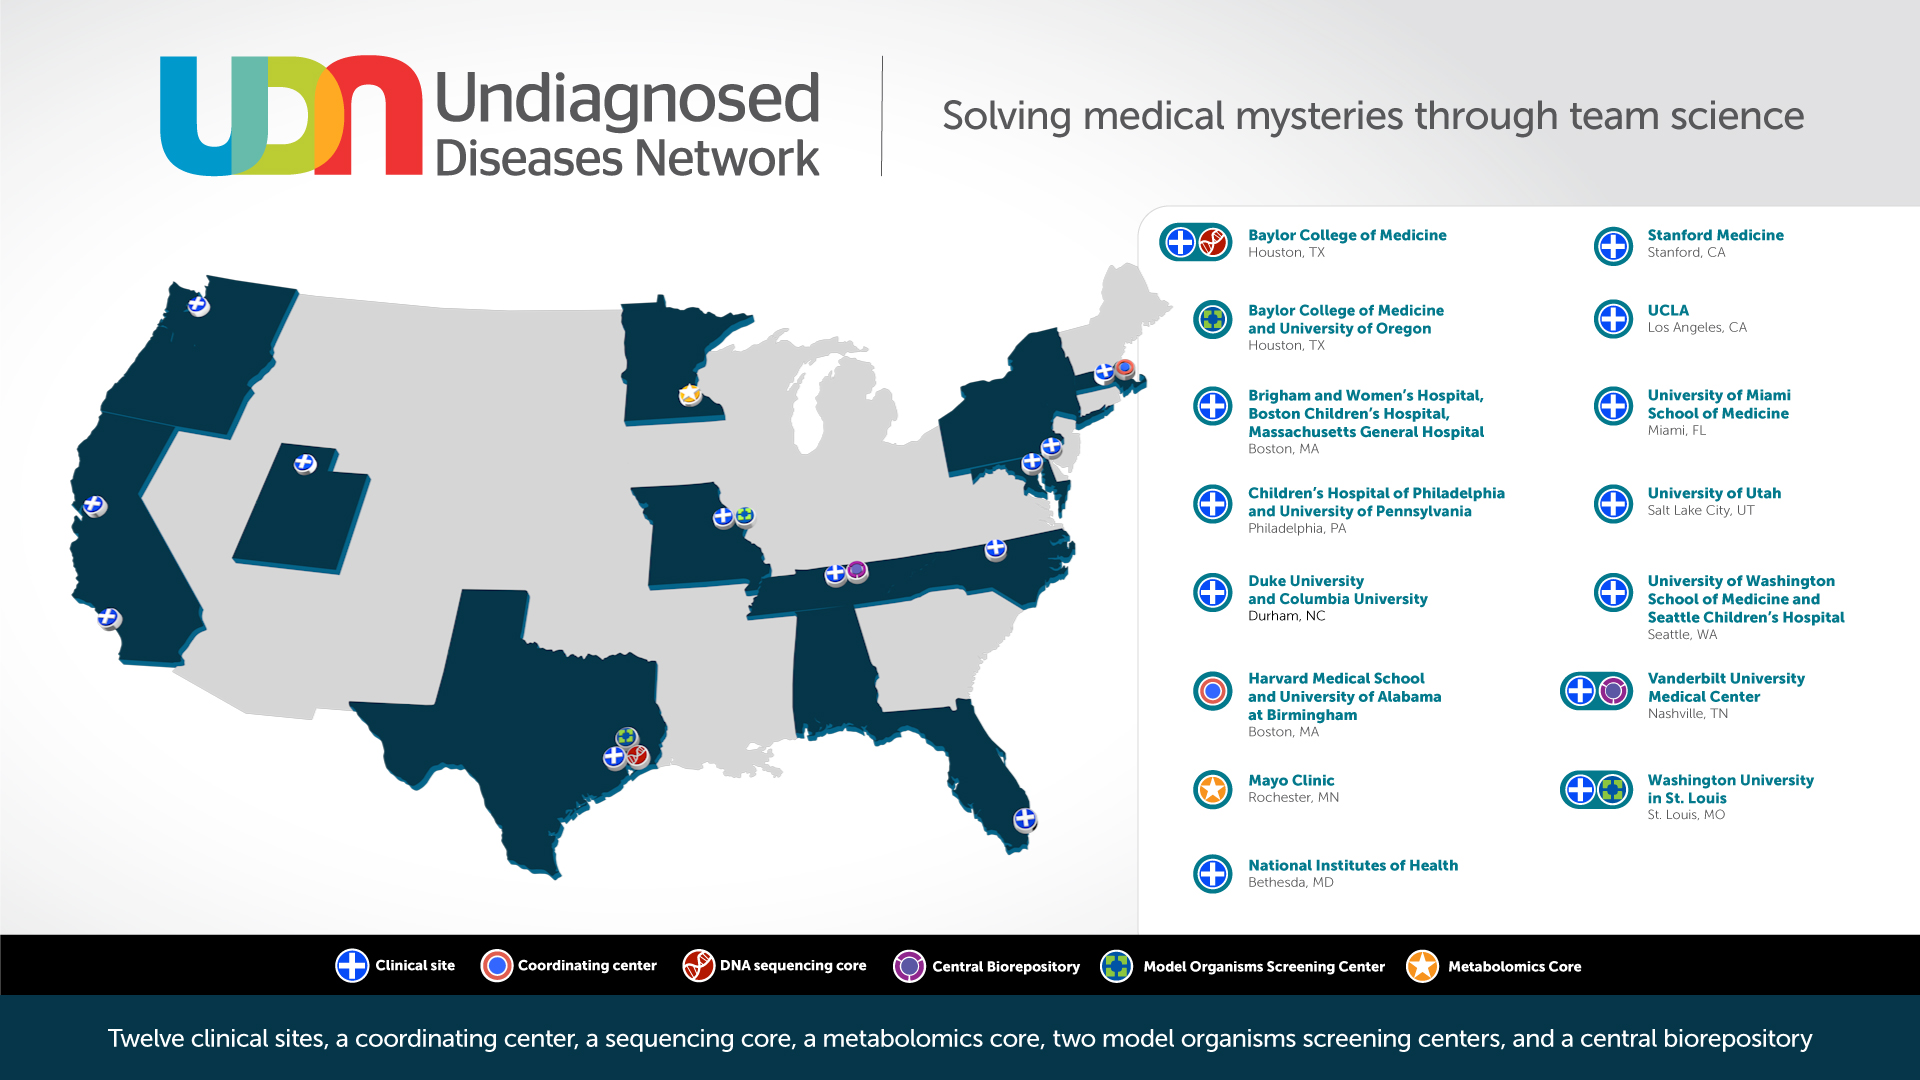 Map of Undiagnosed Diseases Network location